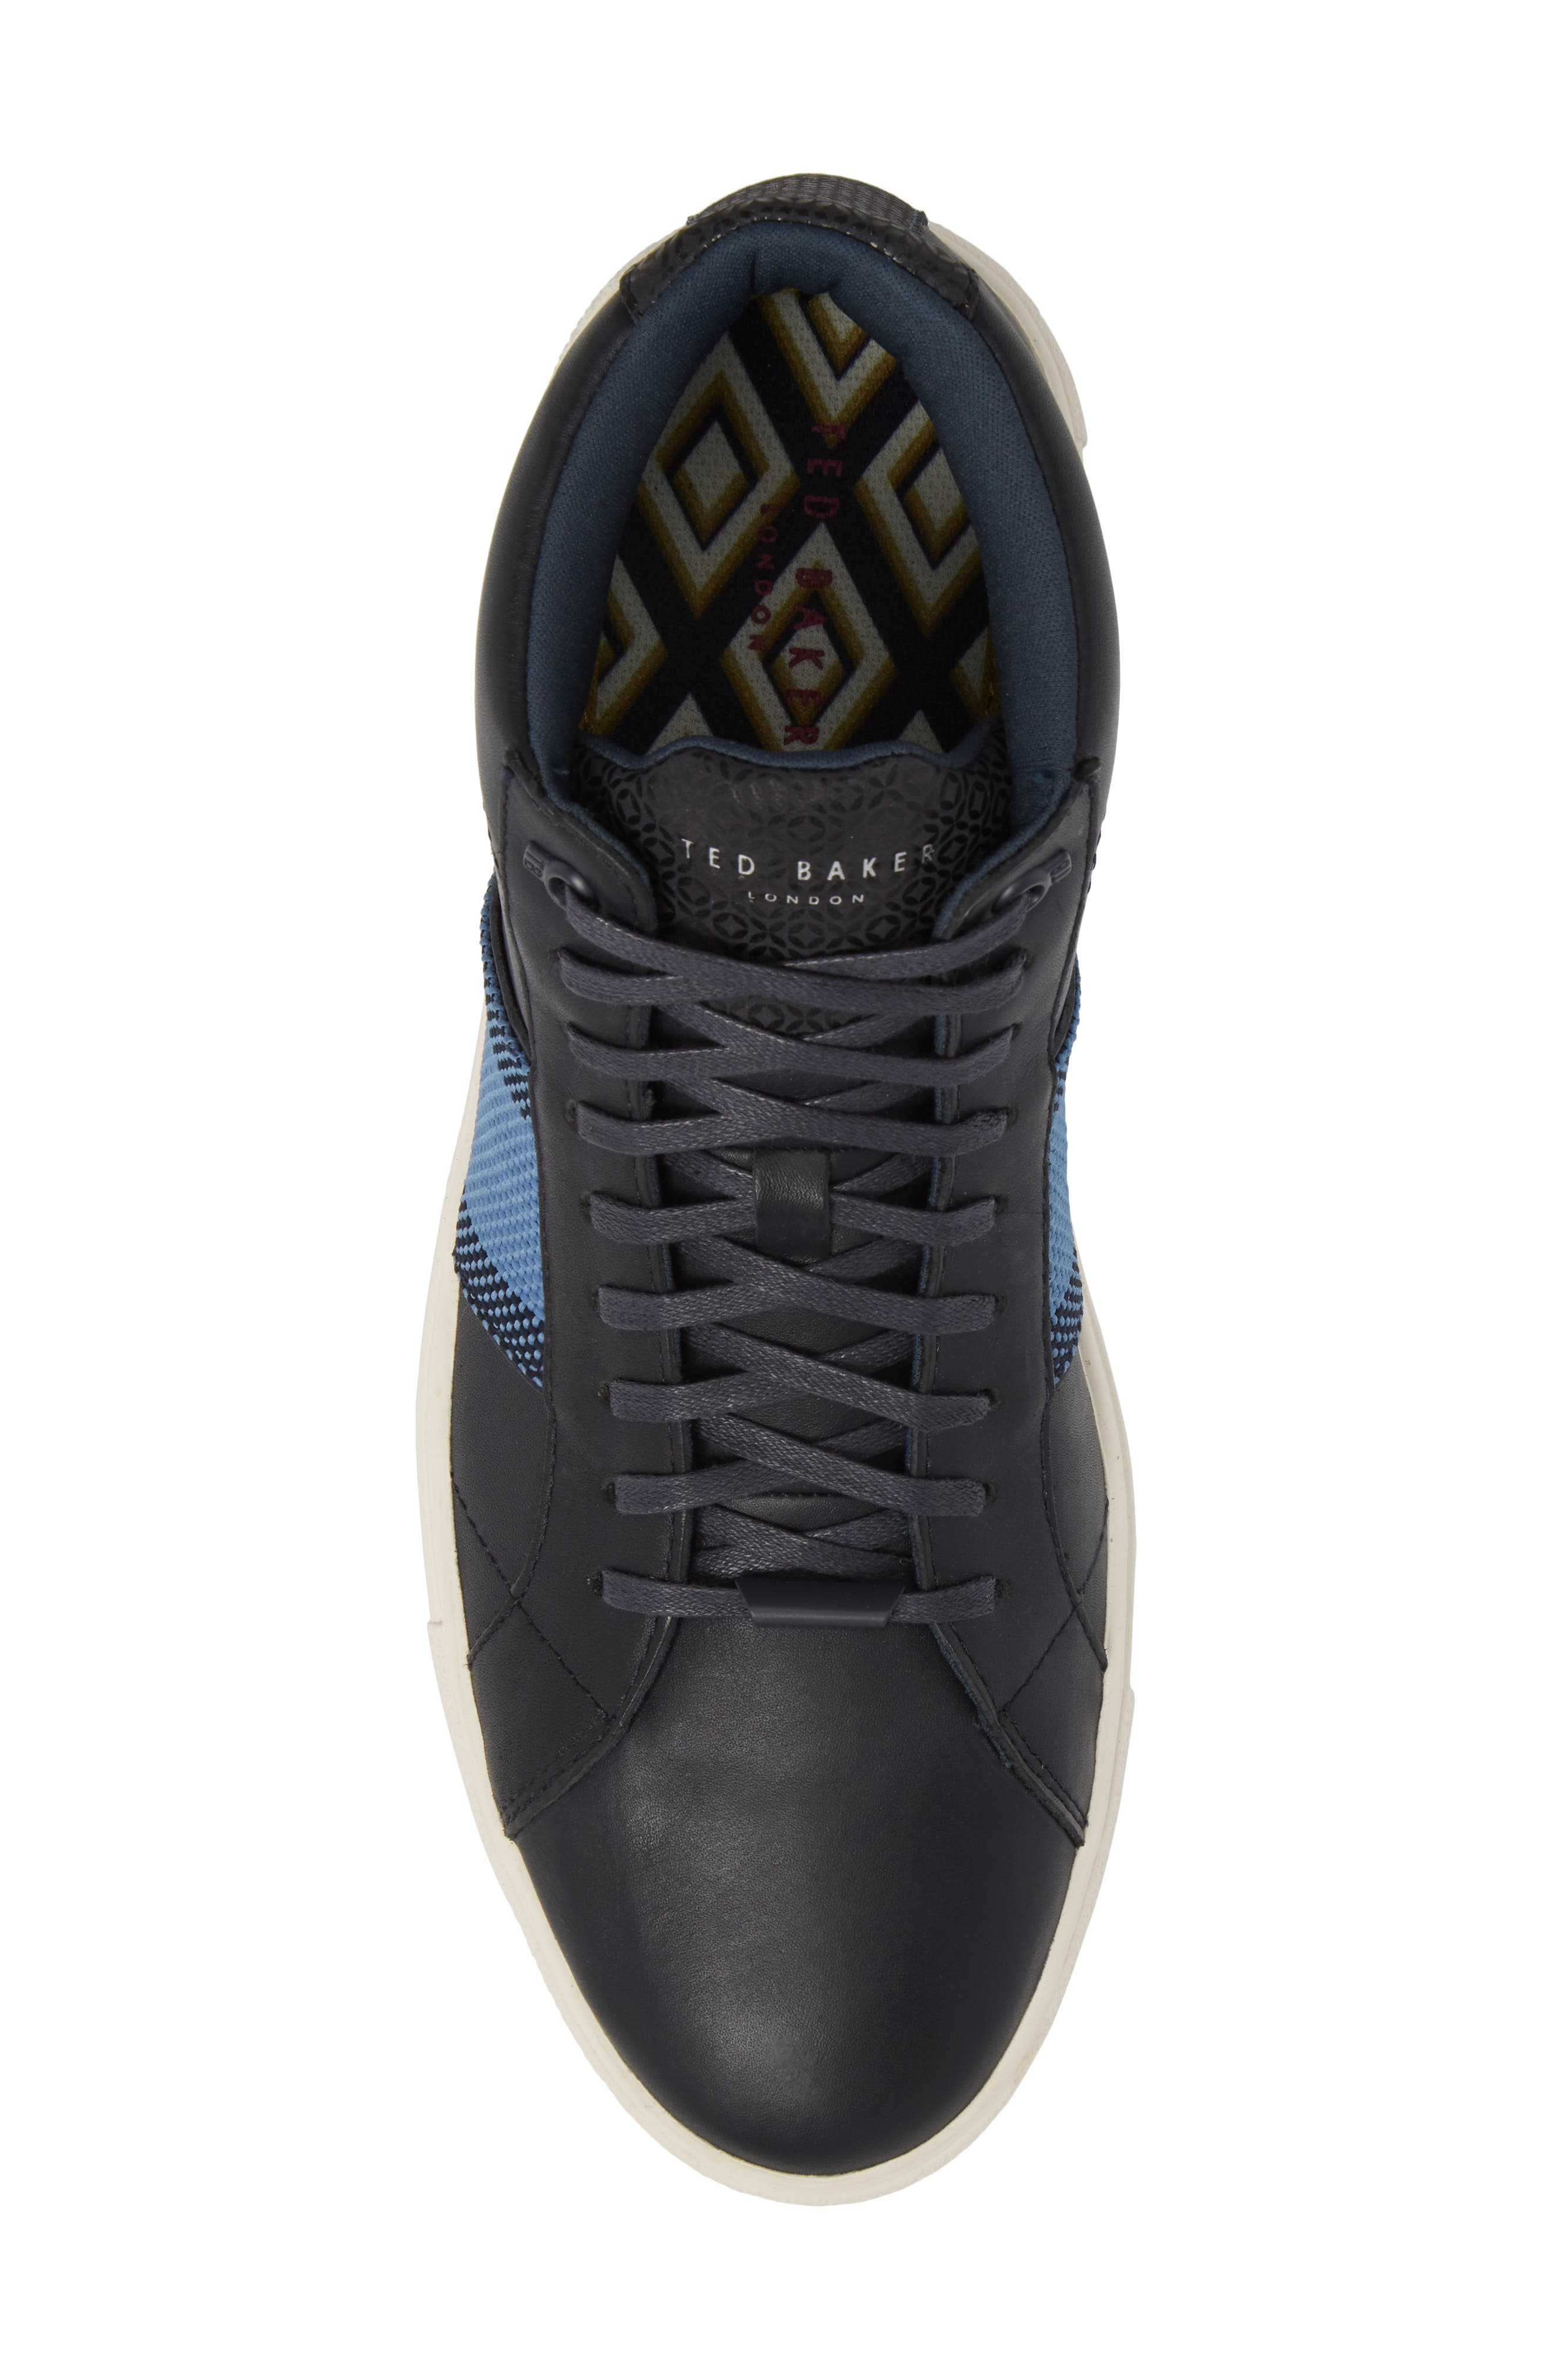 Cruuw High Top Sneaker,                             Alternate thumbnail 5, color,                             Dark Blue Leather